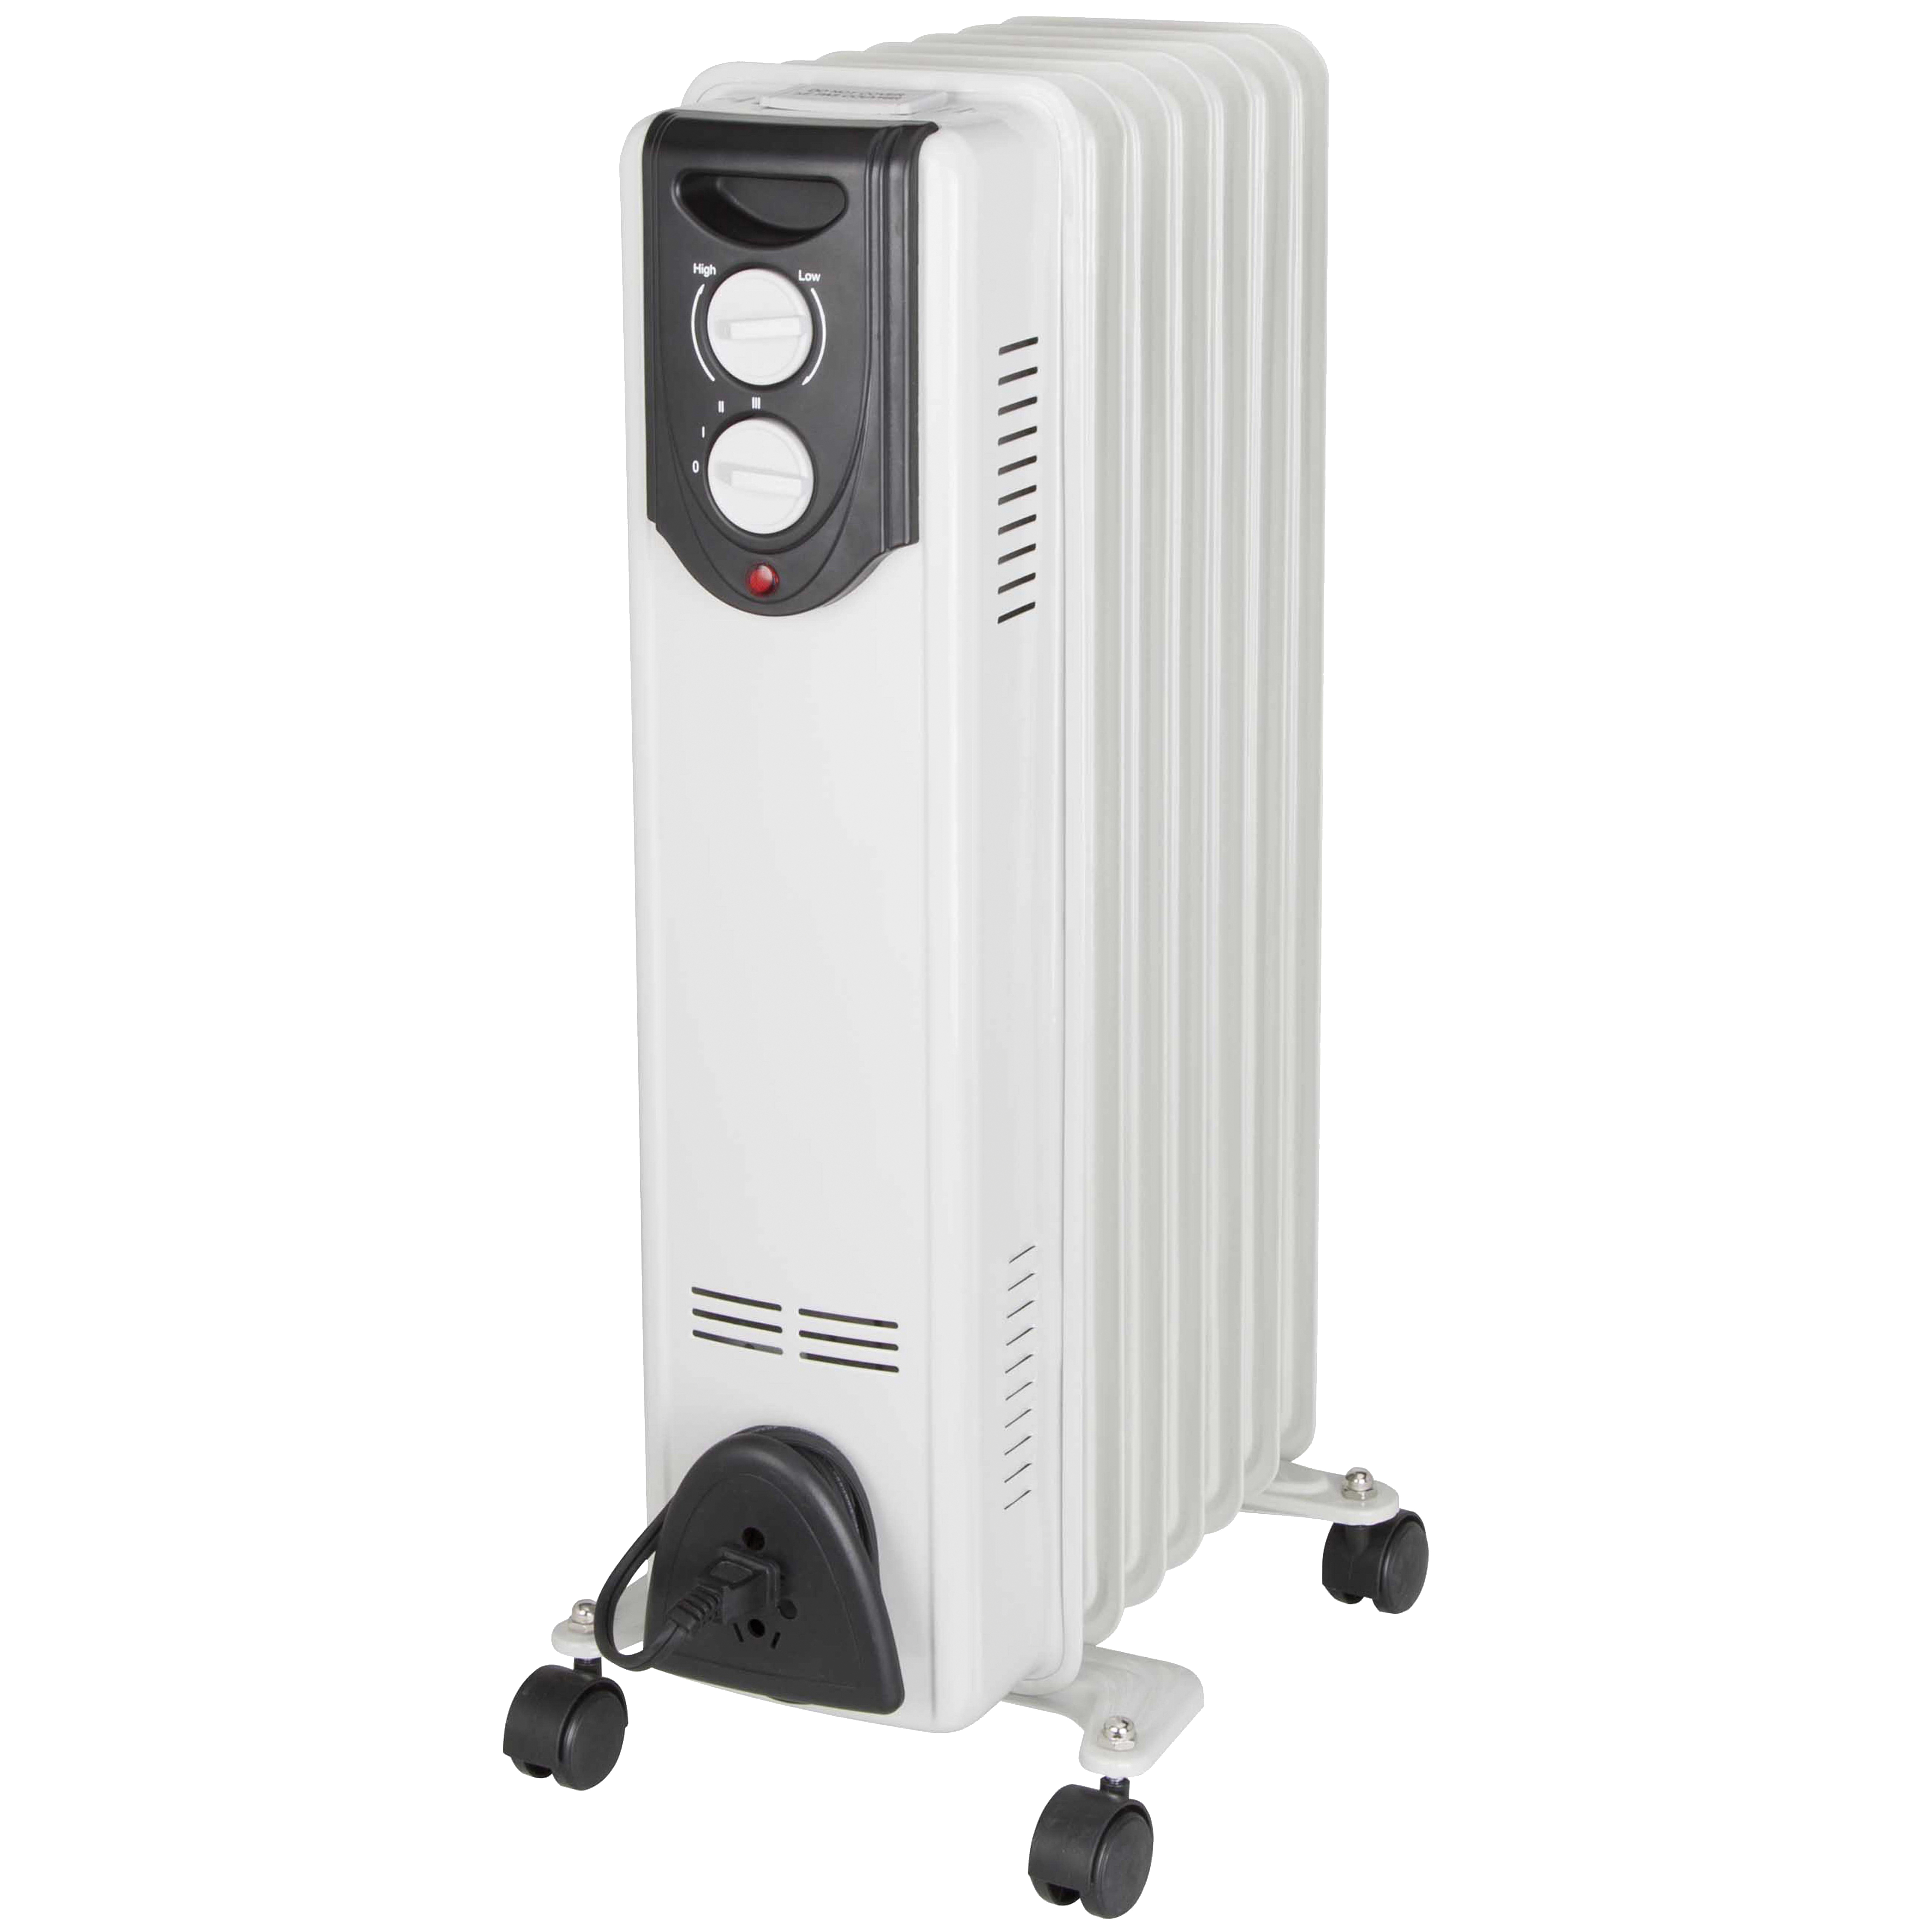 Picture of PowerZone DF-150P9-7 Oil Filled Heater 600/900/1500W White, 12.5 A, 120 V, 600/900/1500 W, 1500 W Heating, White